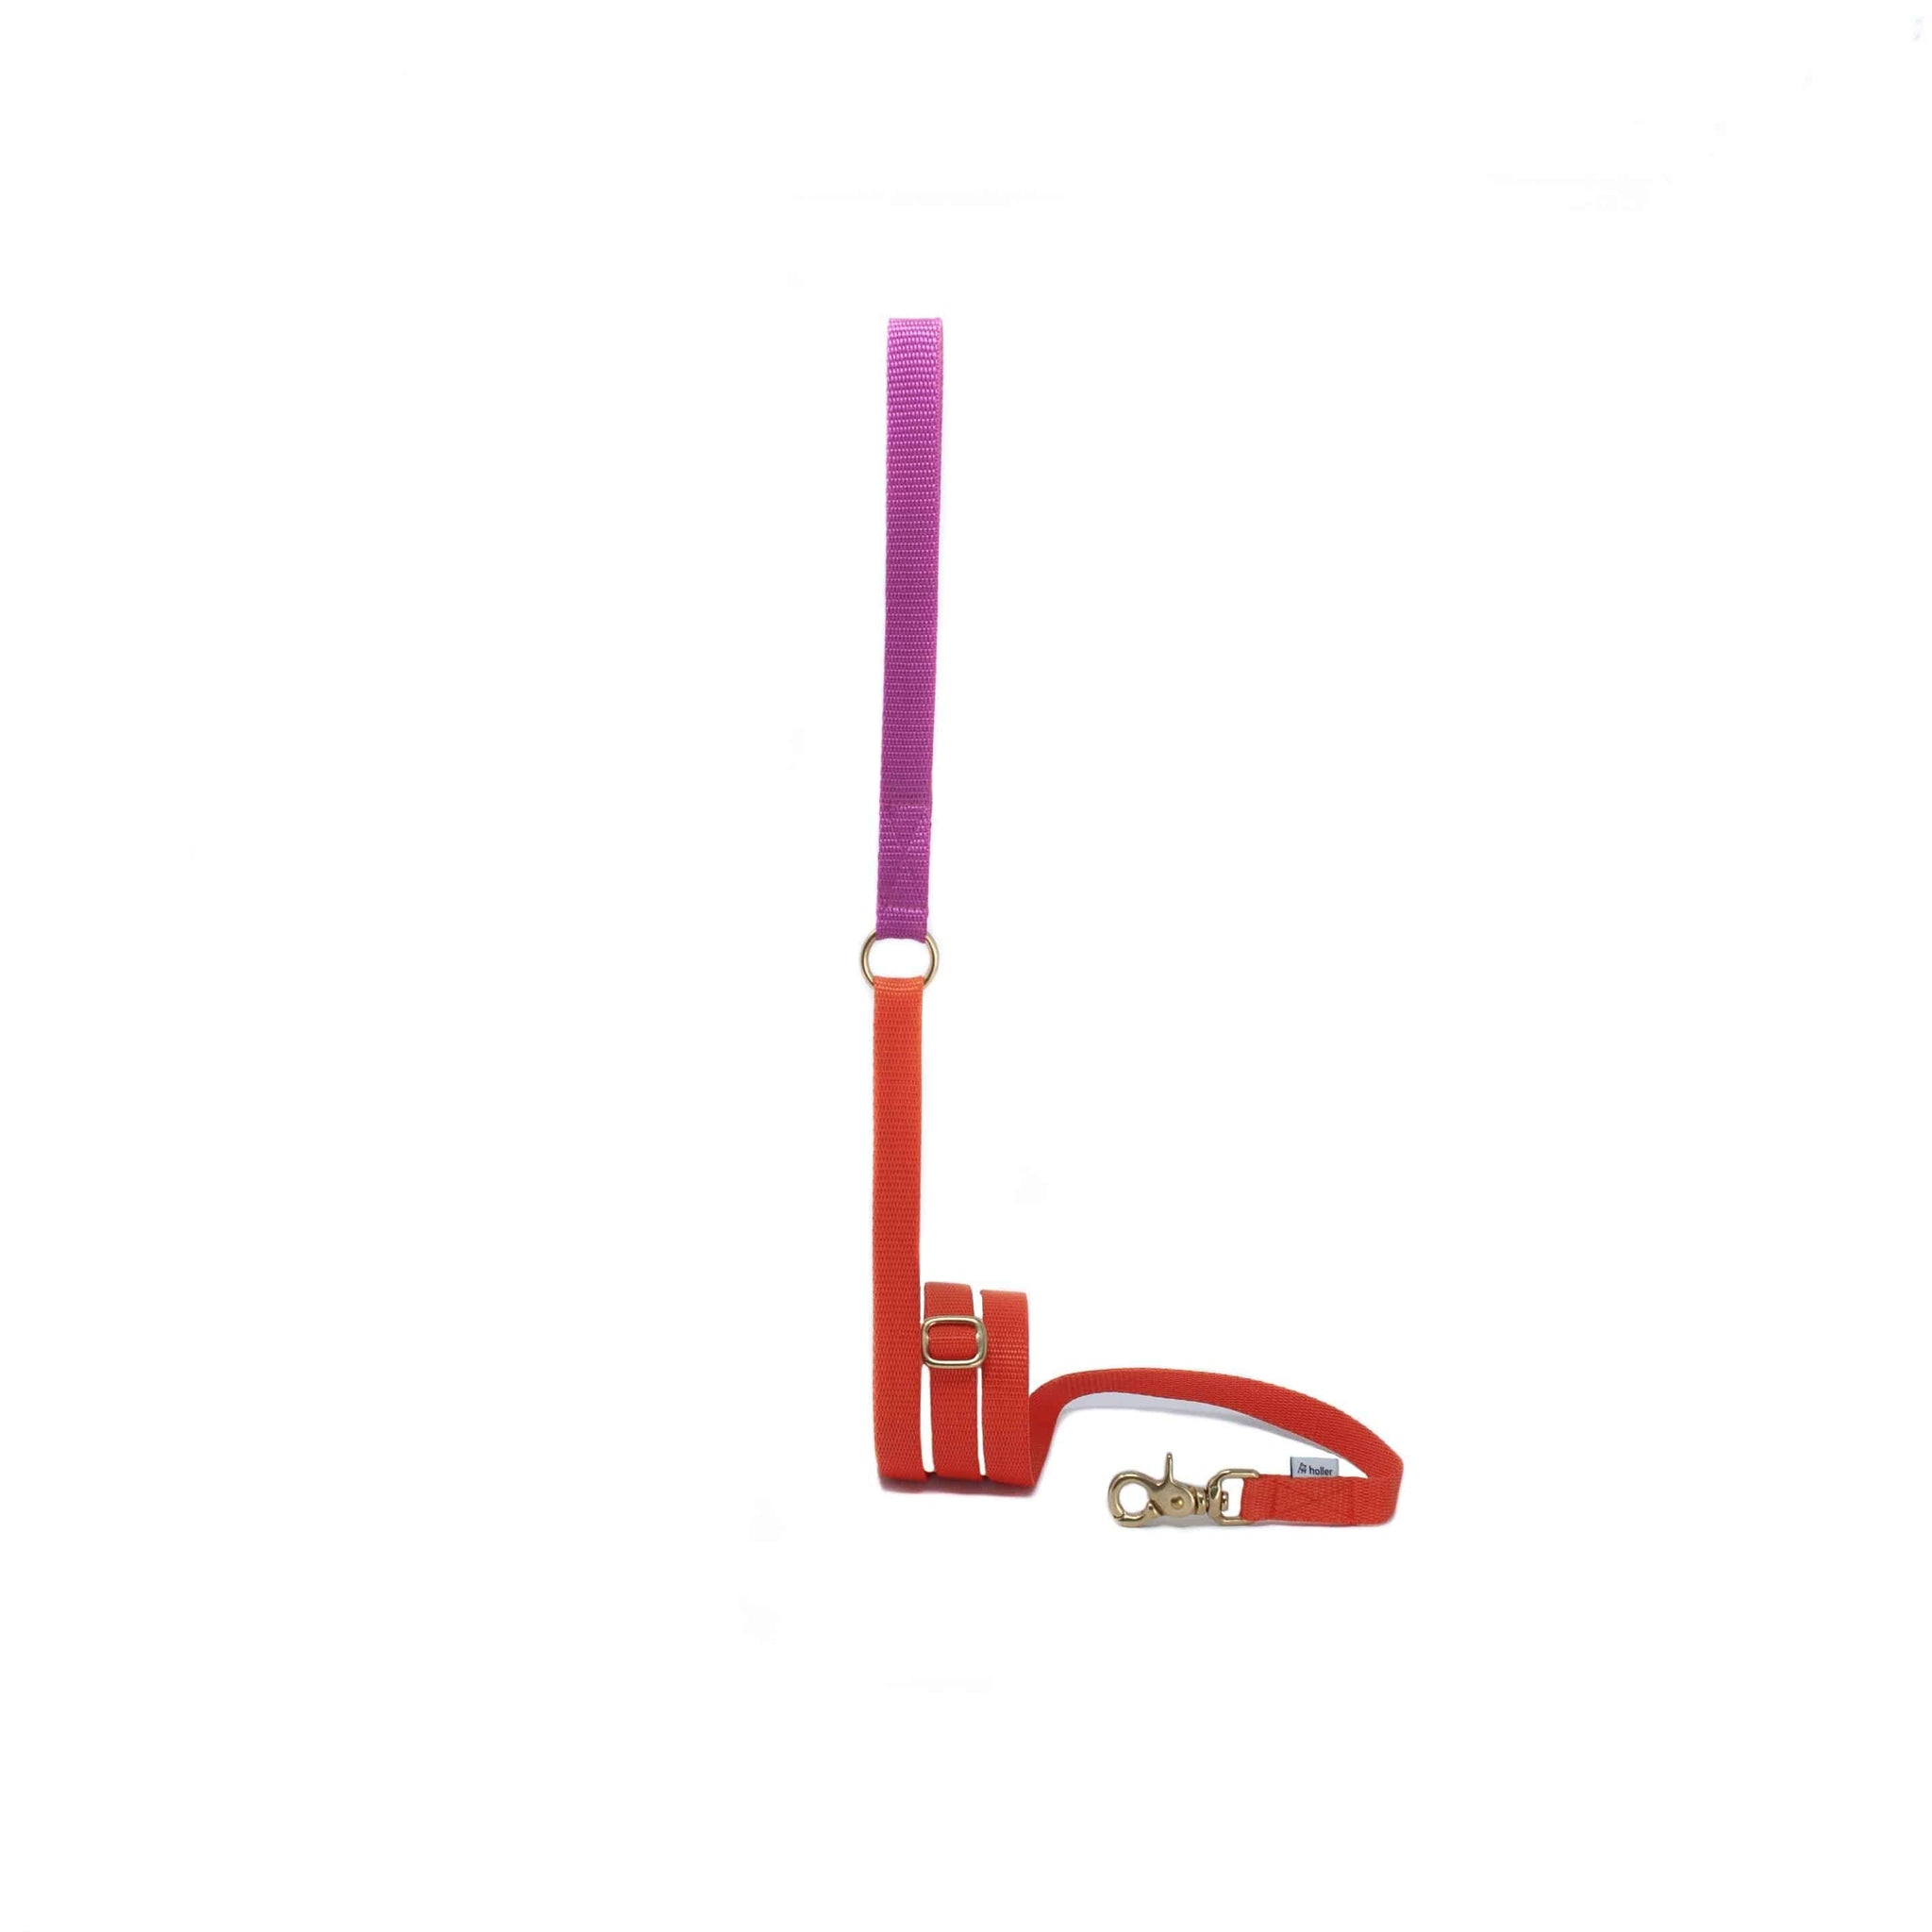 Holler - Extendable Lead - Orange & Pink Fleece Lined Handle - Holler Brighton